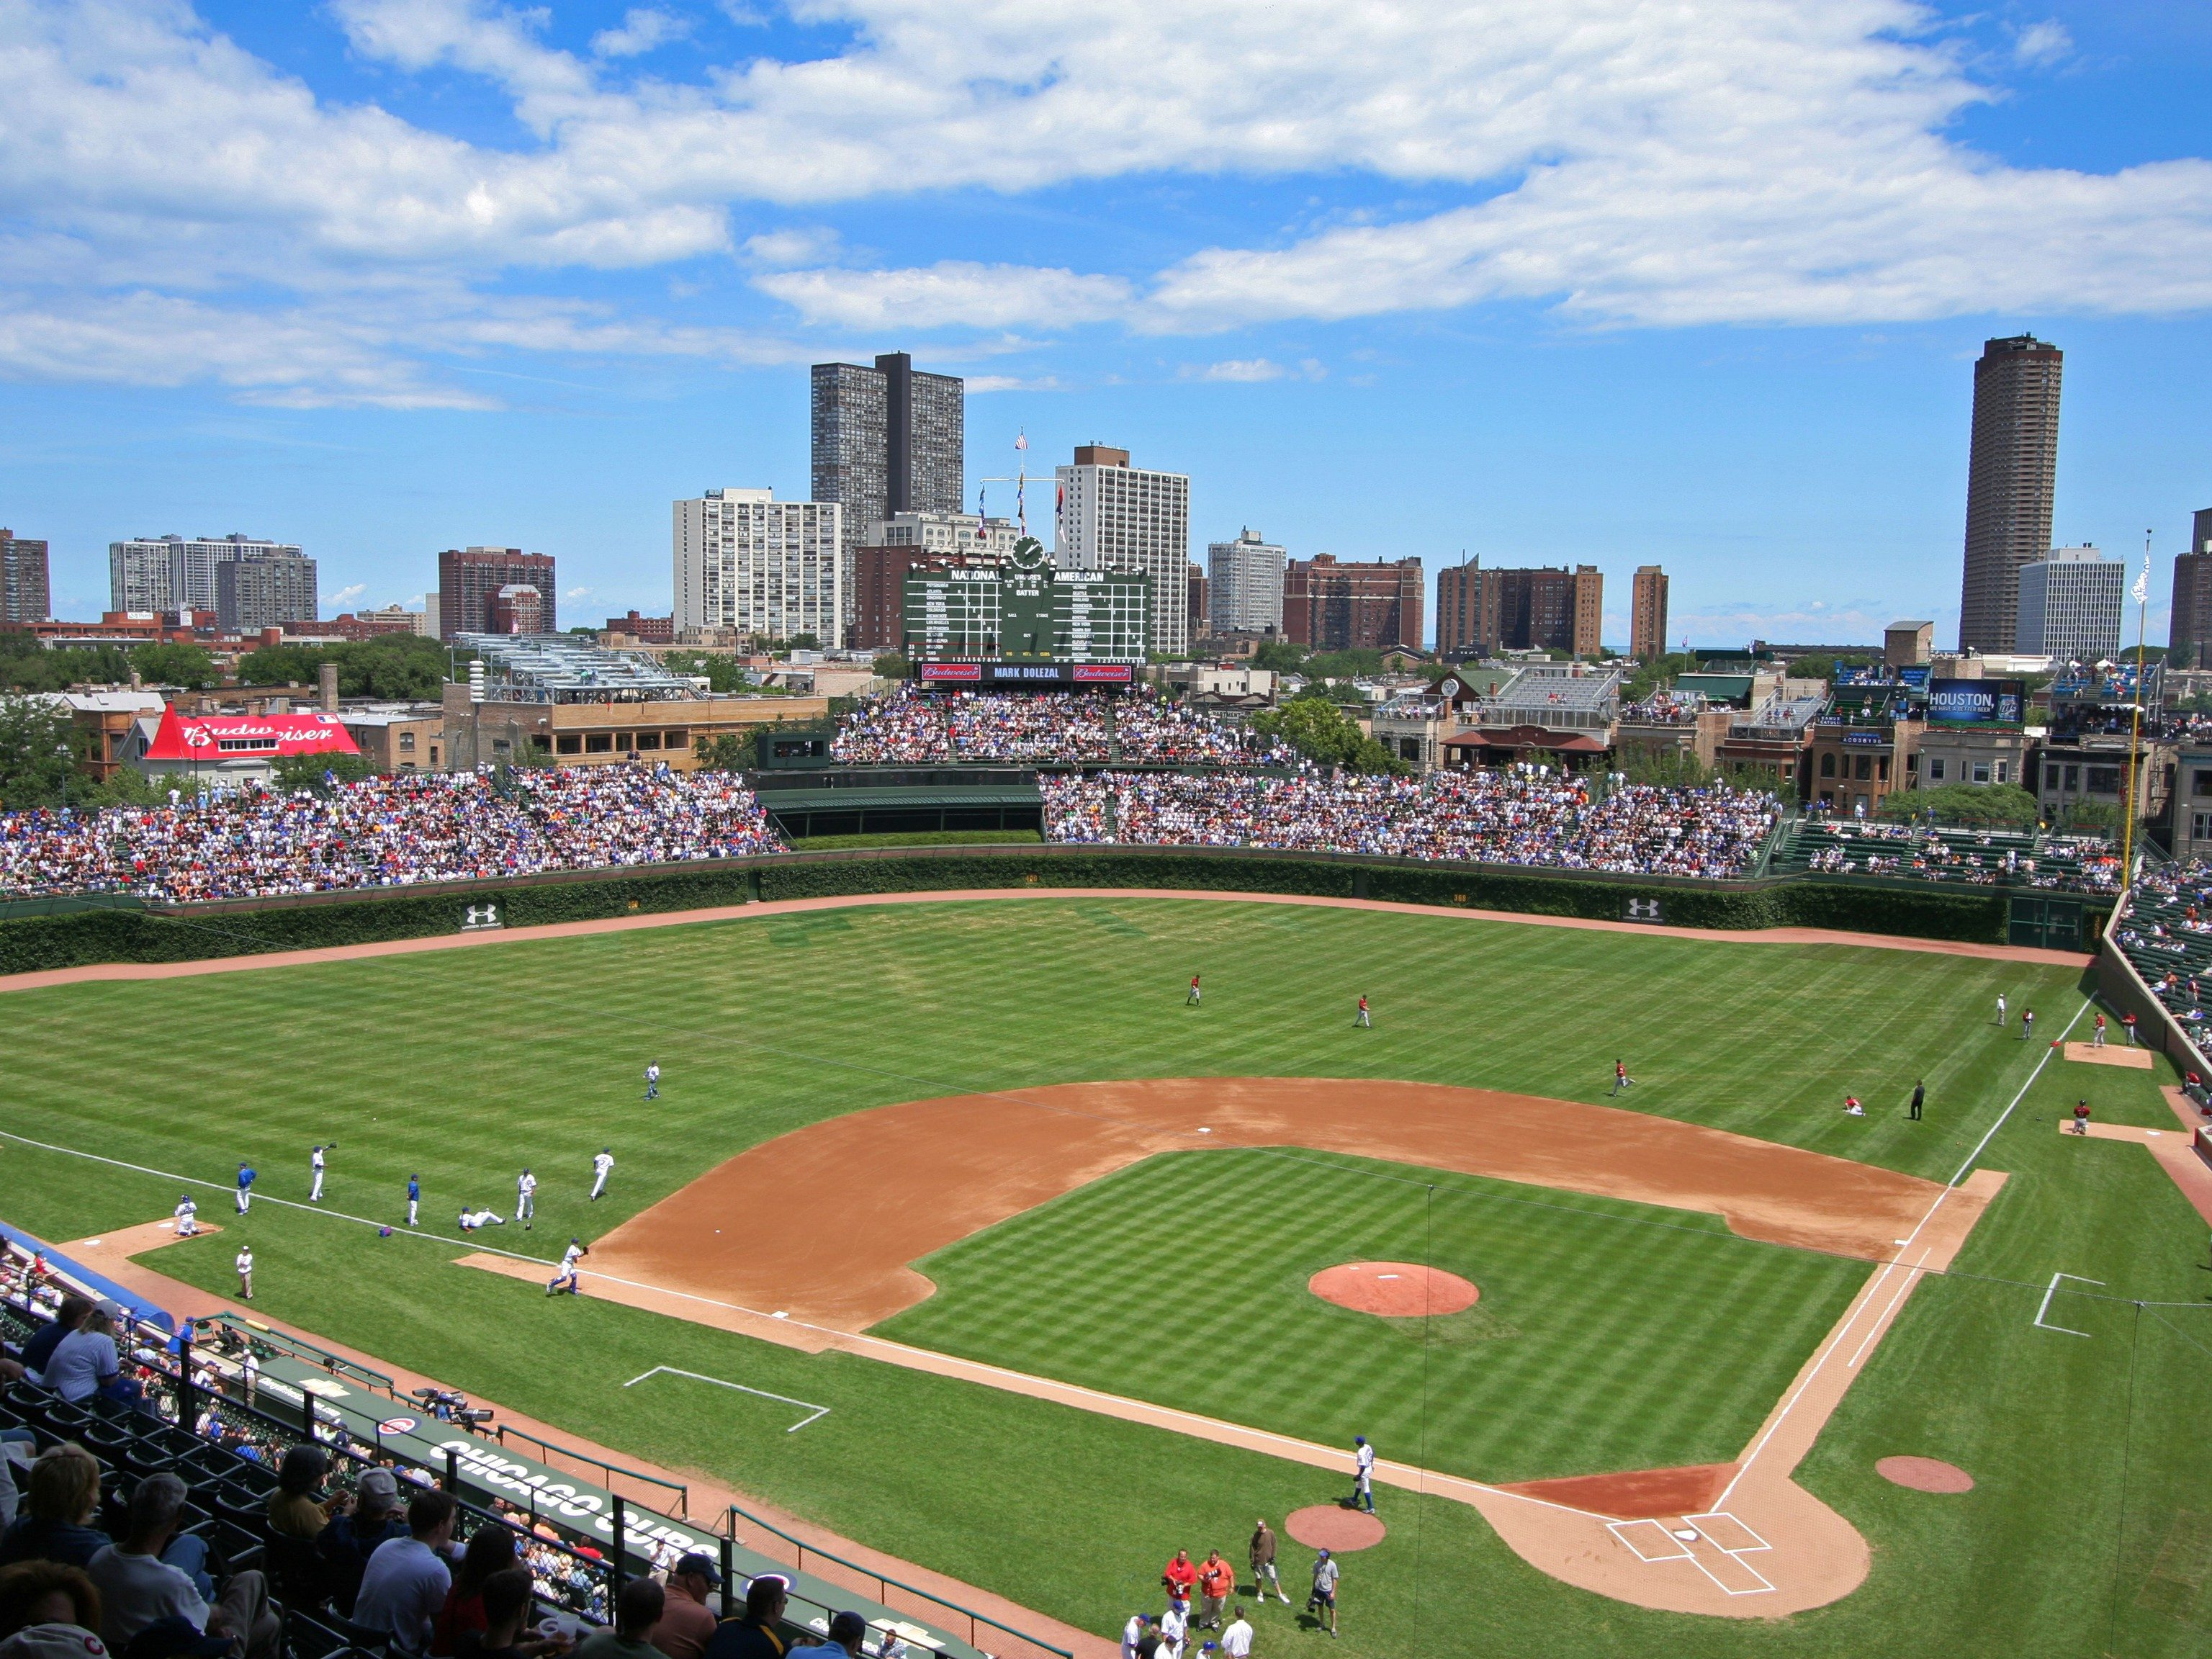 1. Wrigley Field - Chicago, Illinois; home of the Cubs.